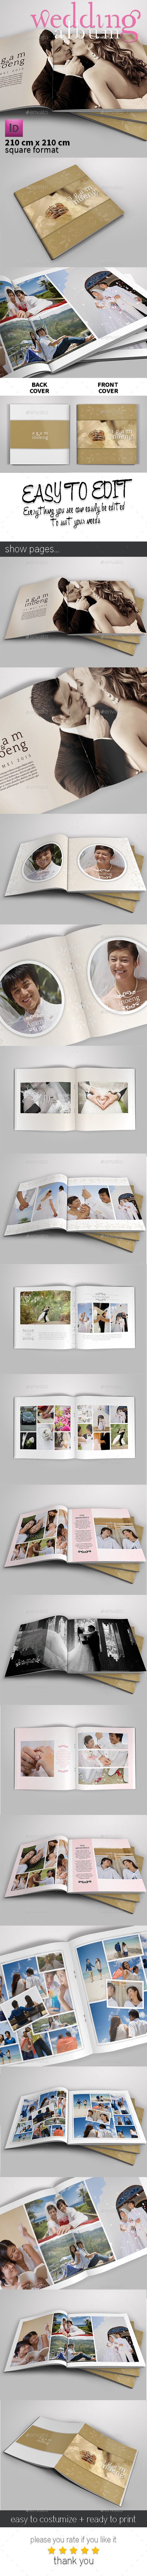 GraphicRiver Wedding Photo Album Square 11242433